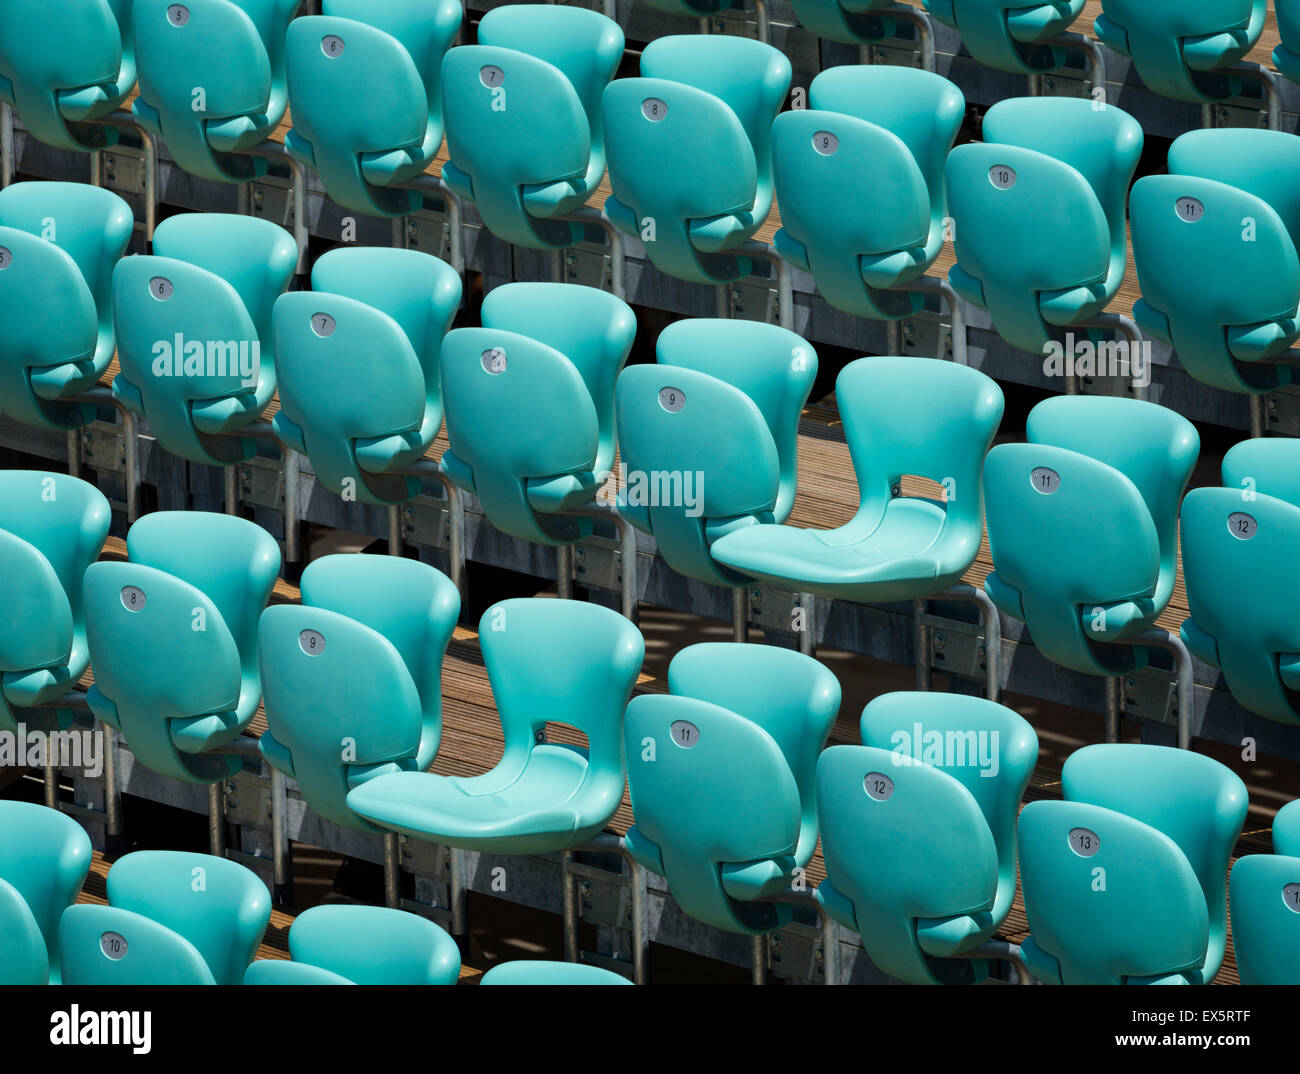 Rows of seats at a concert venue. - Stock Image